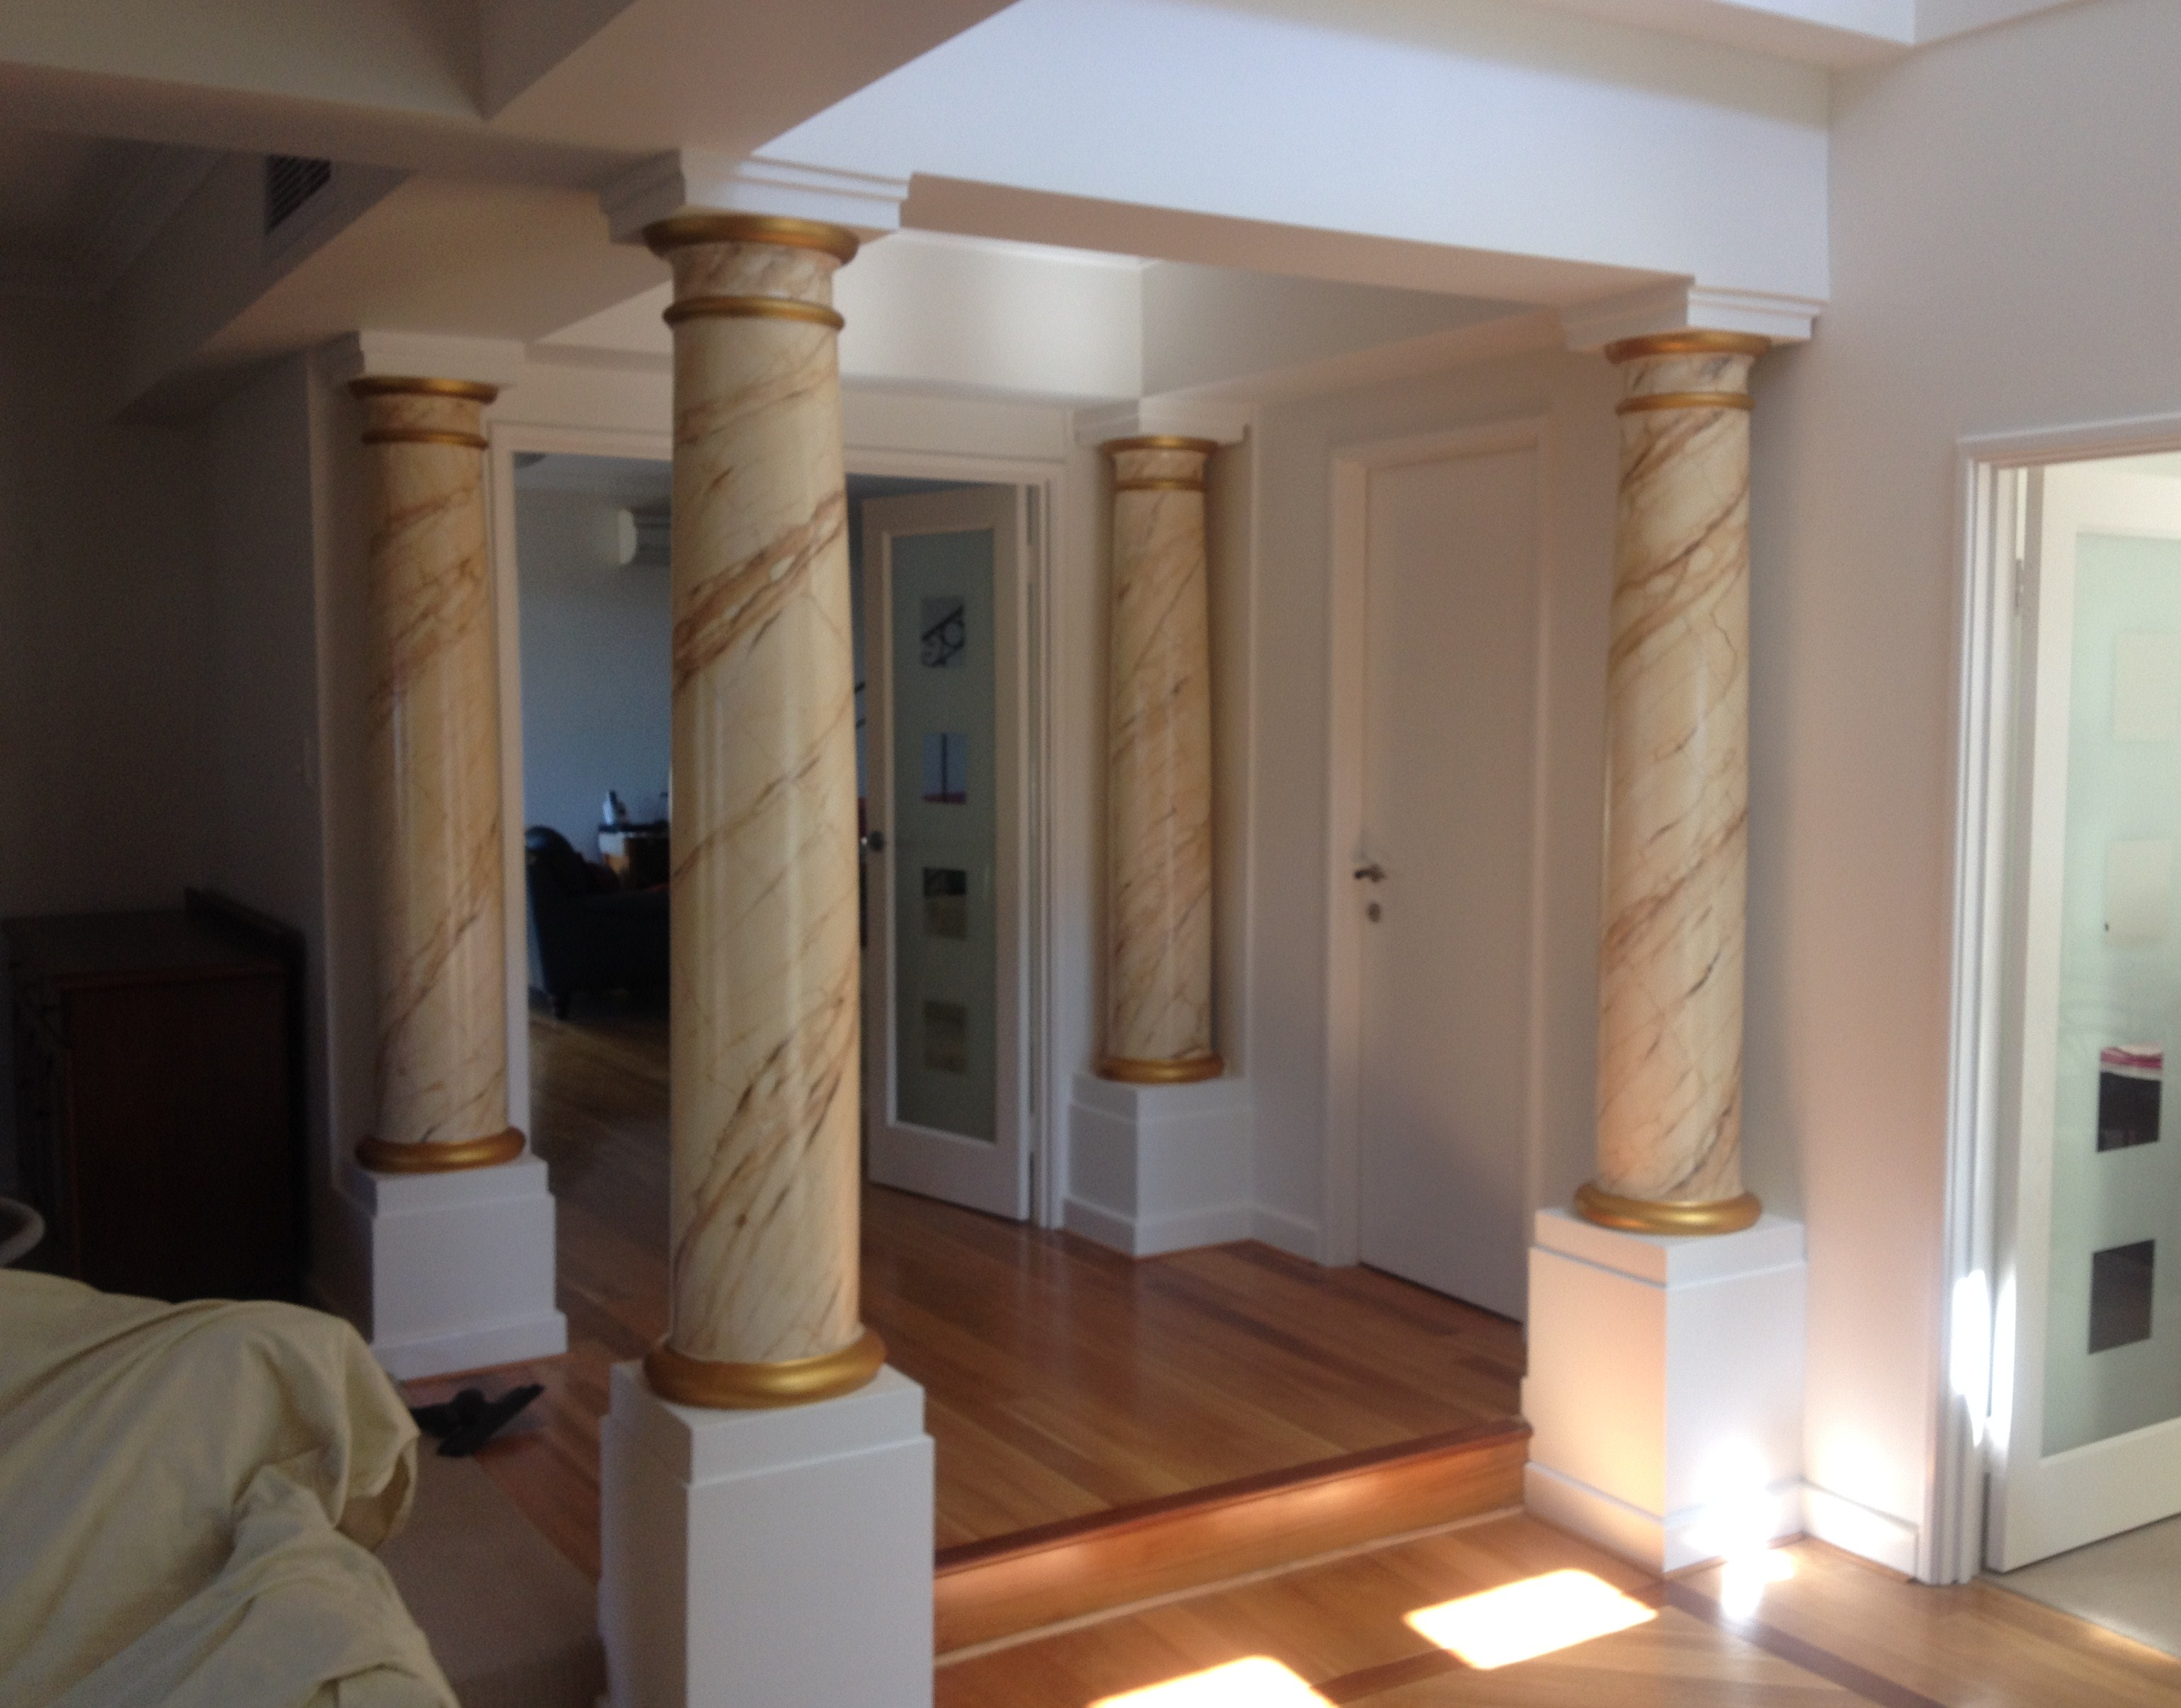 Interior shot of white painted walls and feature marble pillars